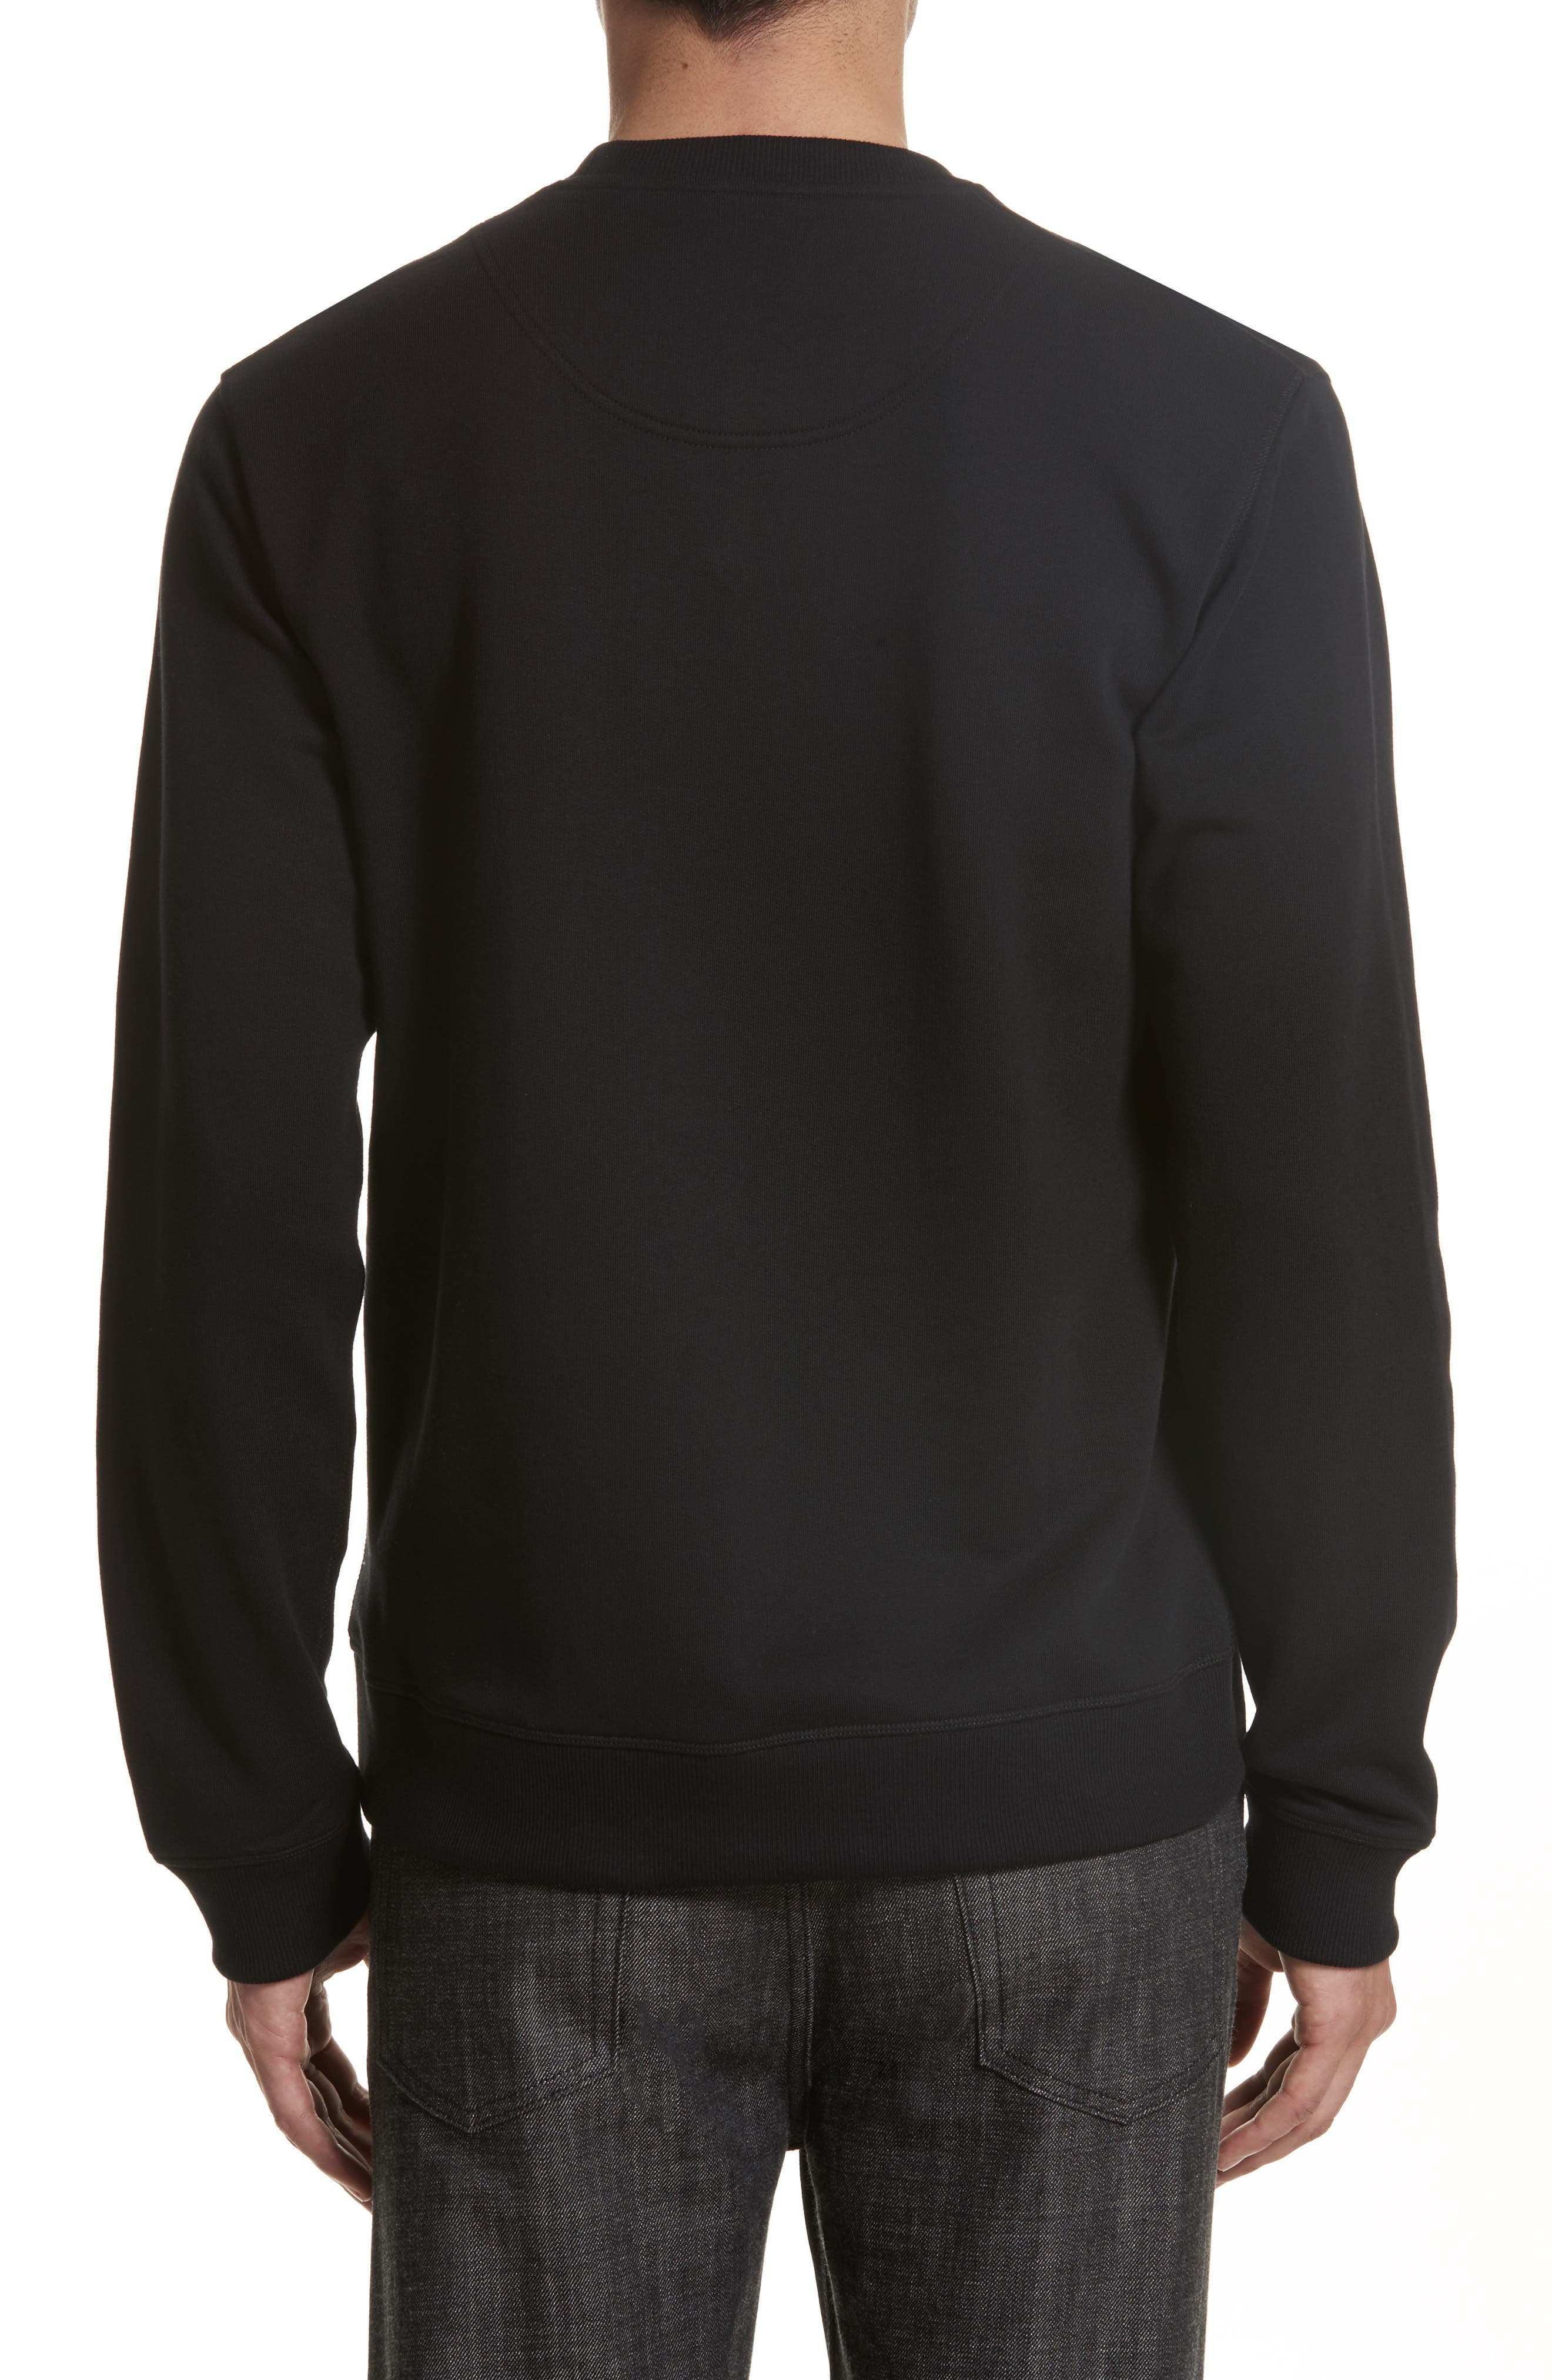 Embroidered Graphic Sweatshirt,                             Alternate thumbnail 2, color,                             001